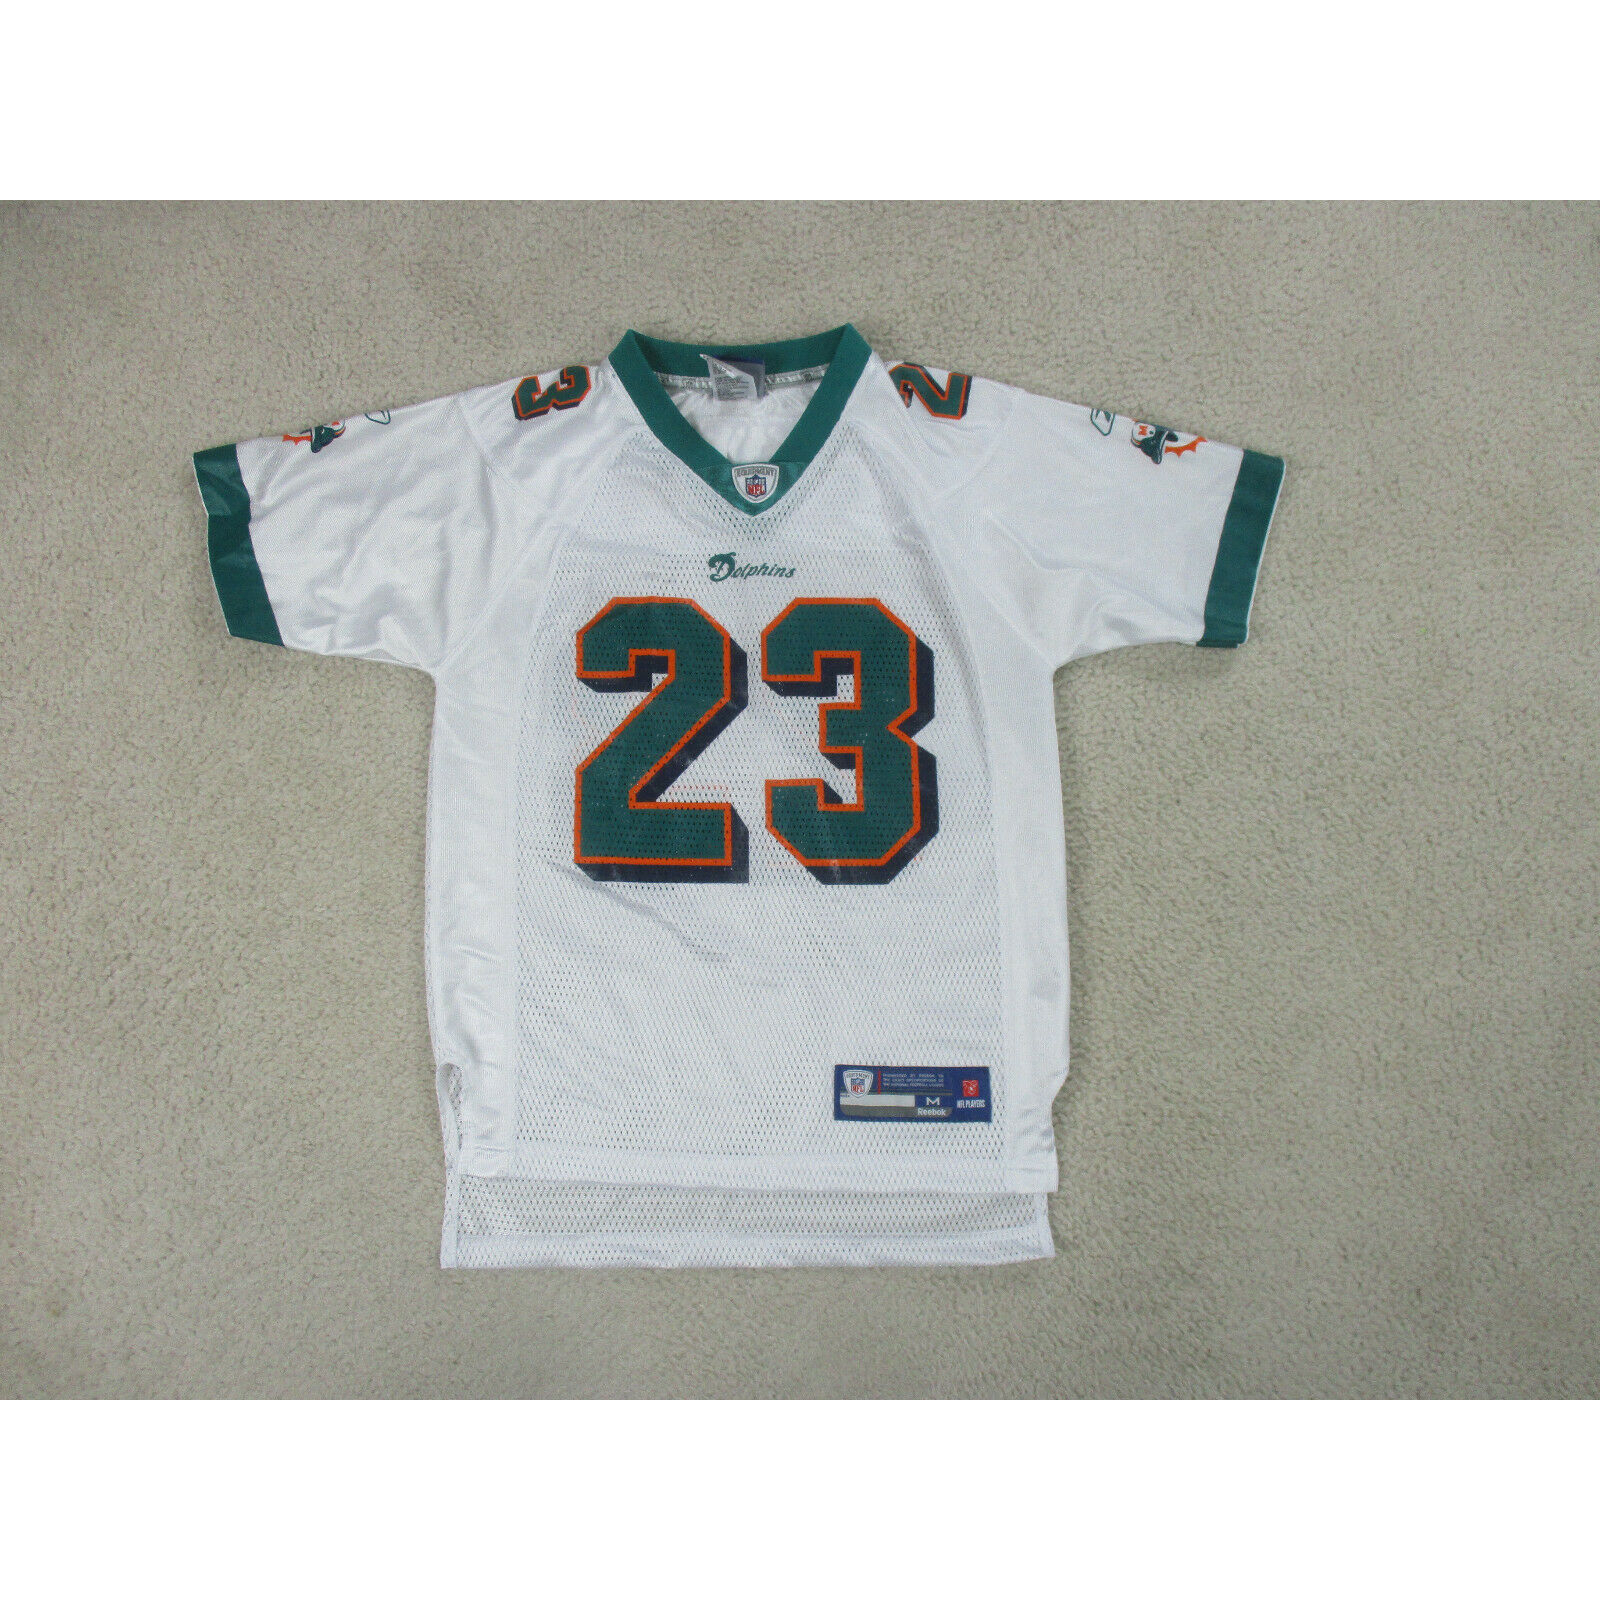 Product Image 1 - Reebok Ronnie Brown Miami Dolphins